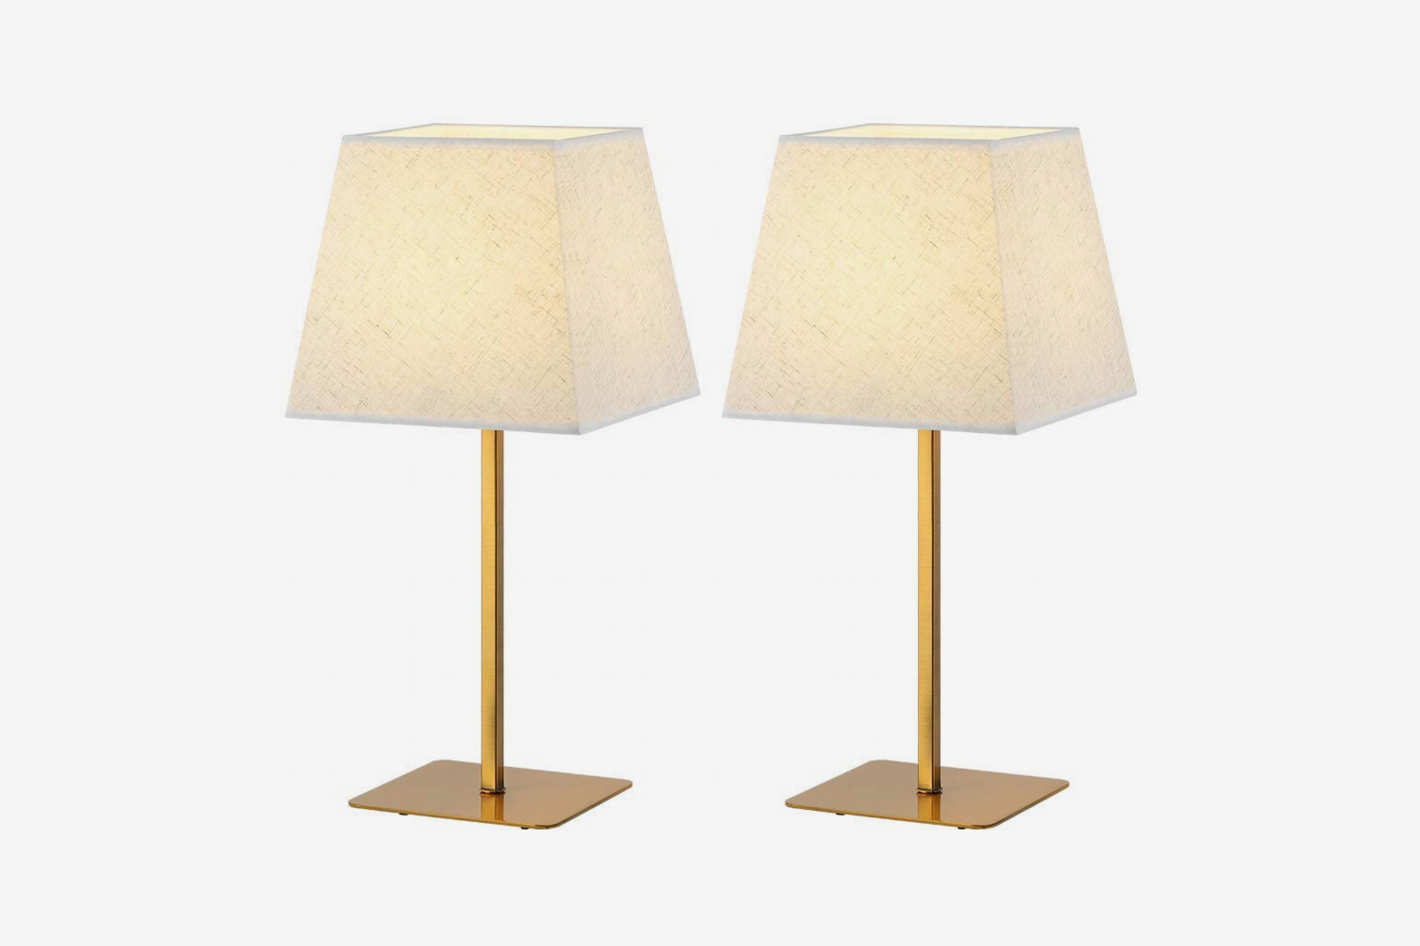 Cool Bedside Lamps Haitral Gold Table Lamps Set Of 2